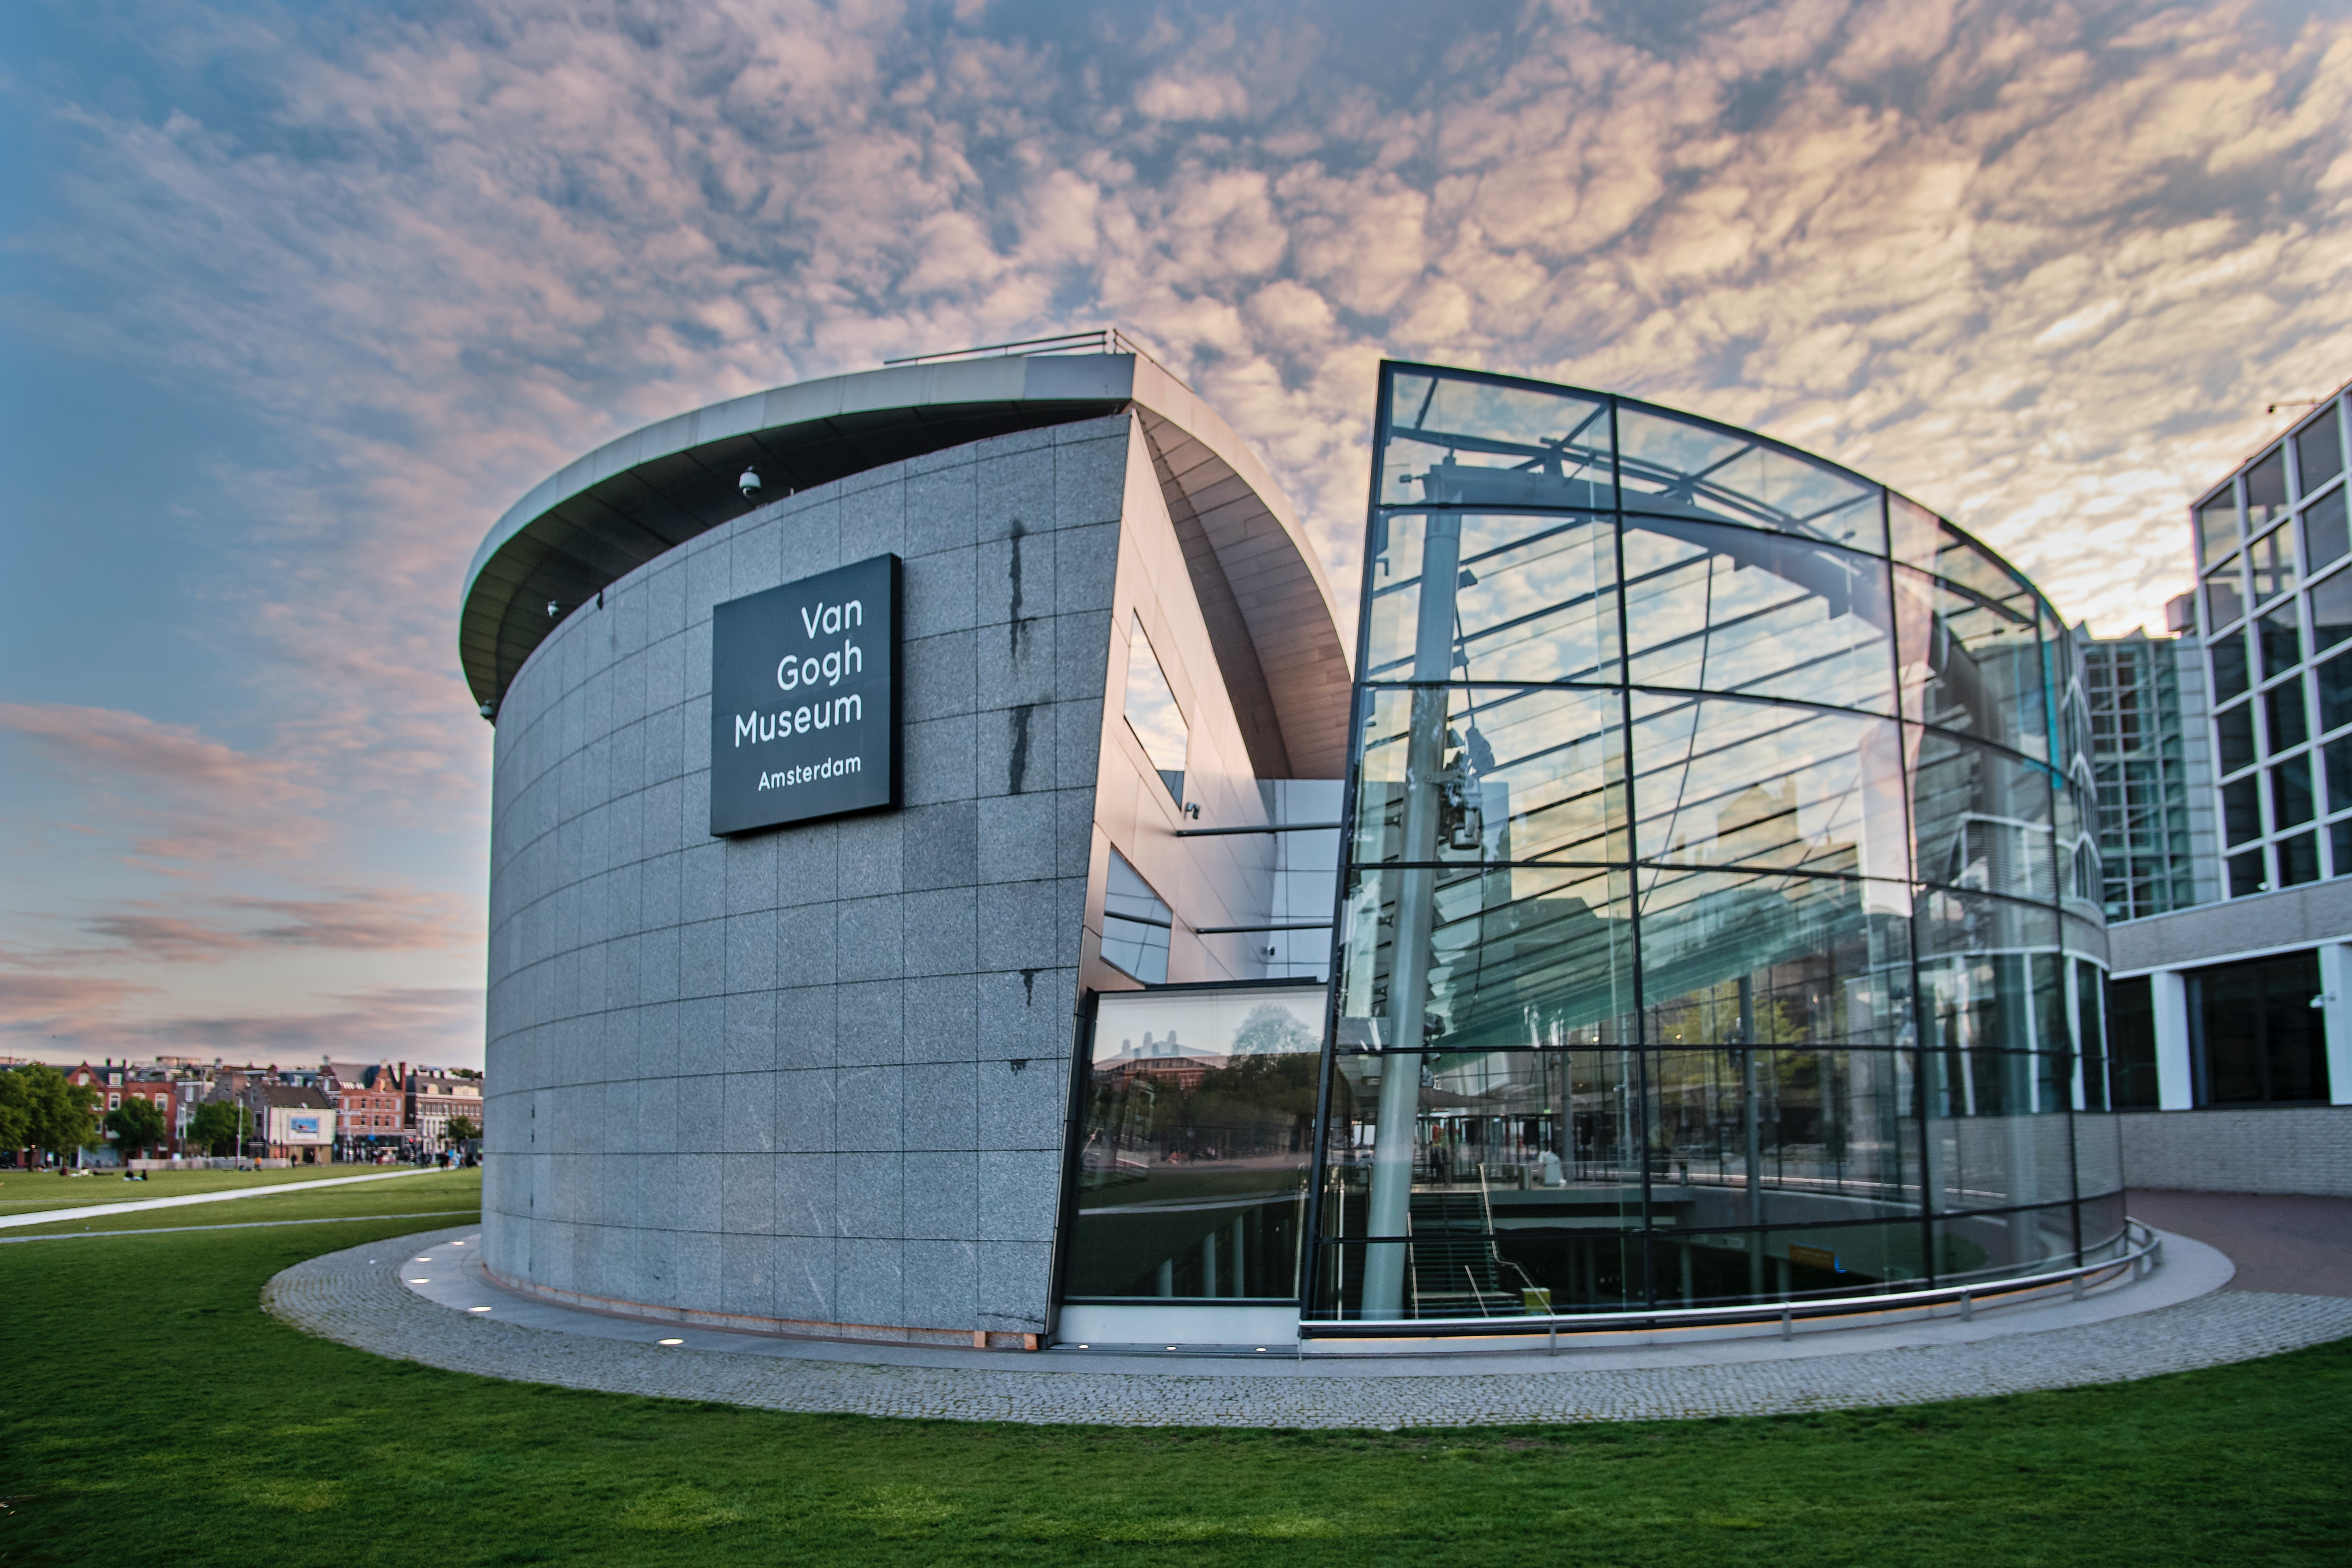 Visit Van Gogh Museum, Places to Visit in Amsterdam in May